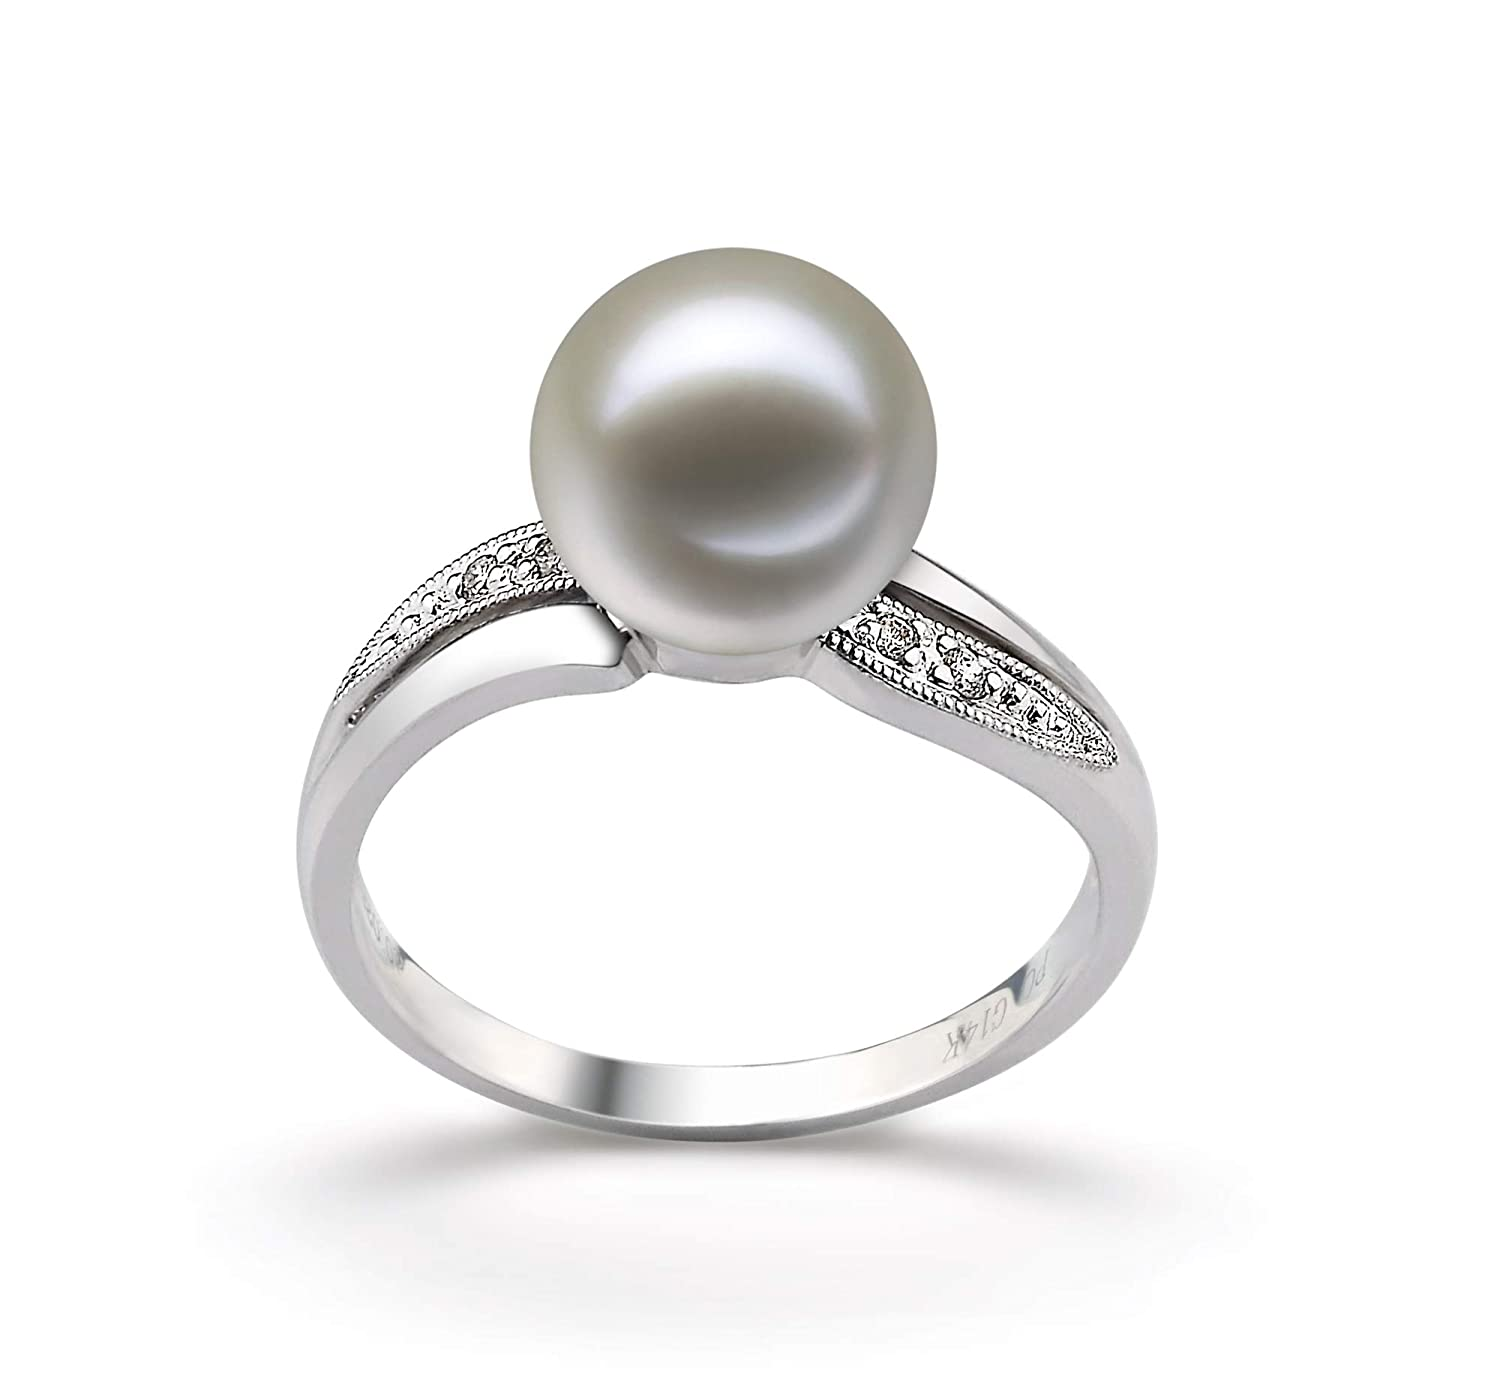 d1b069222f5d37 Amazon.com: Caroline White 9-10mm AAAA Quality Freshwater 14K White Gold  Cultured Pearl Ring For Women: Jewelry